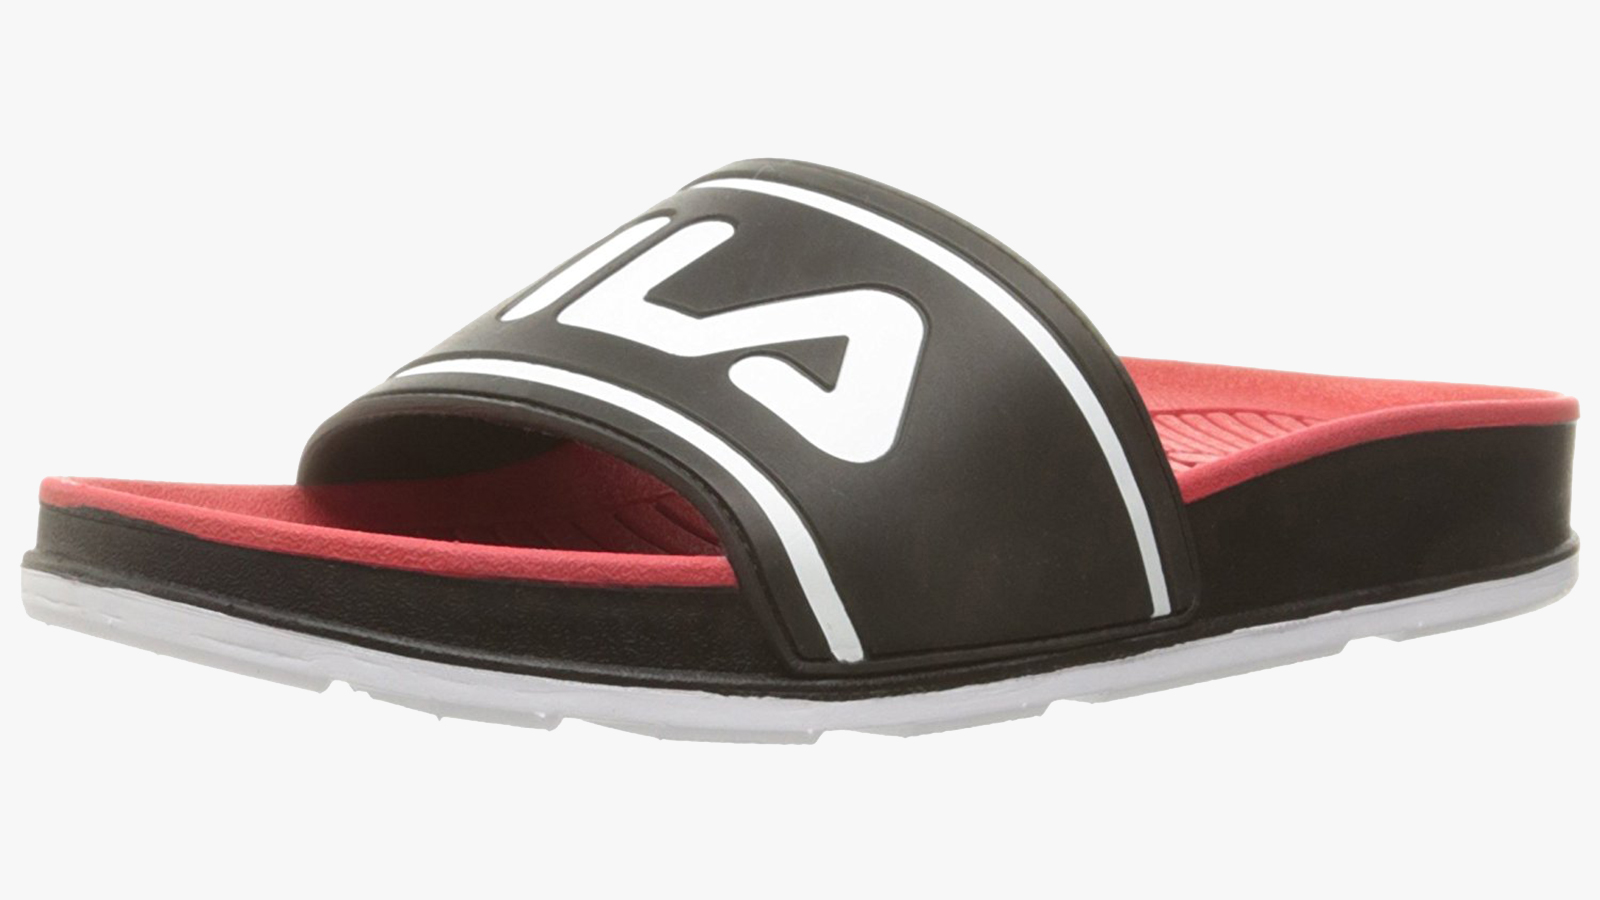 Fila Best Men's Slides